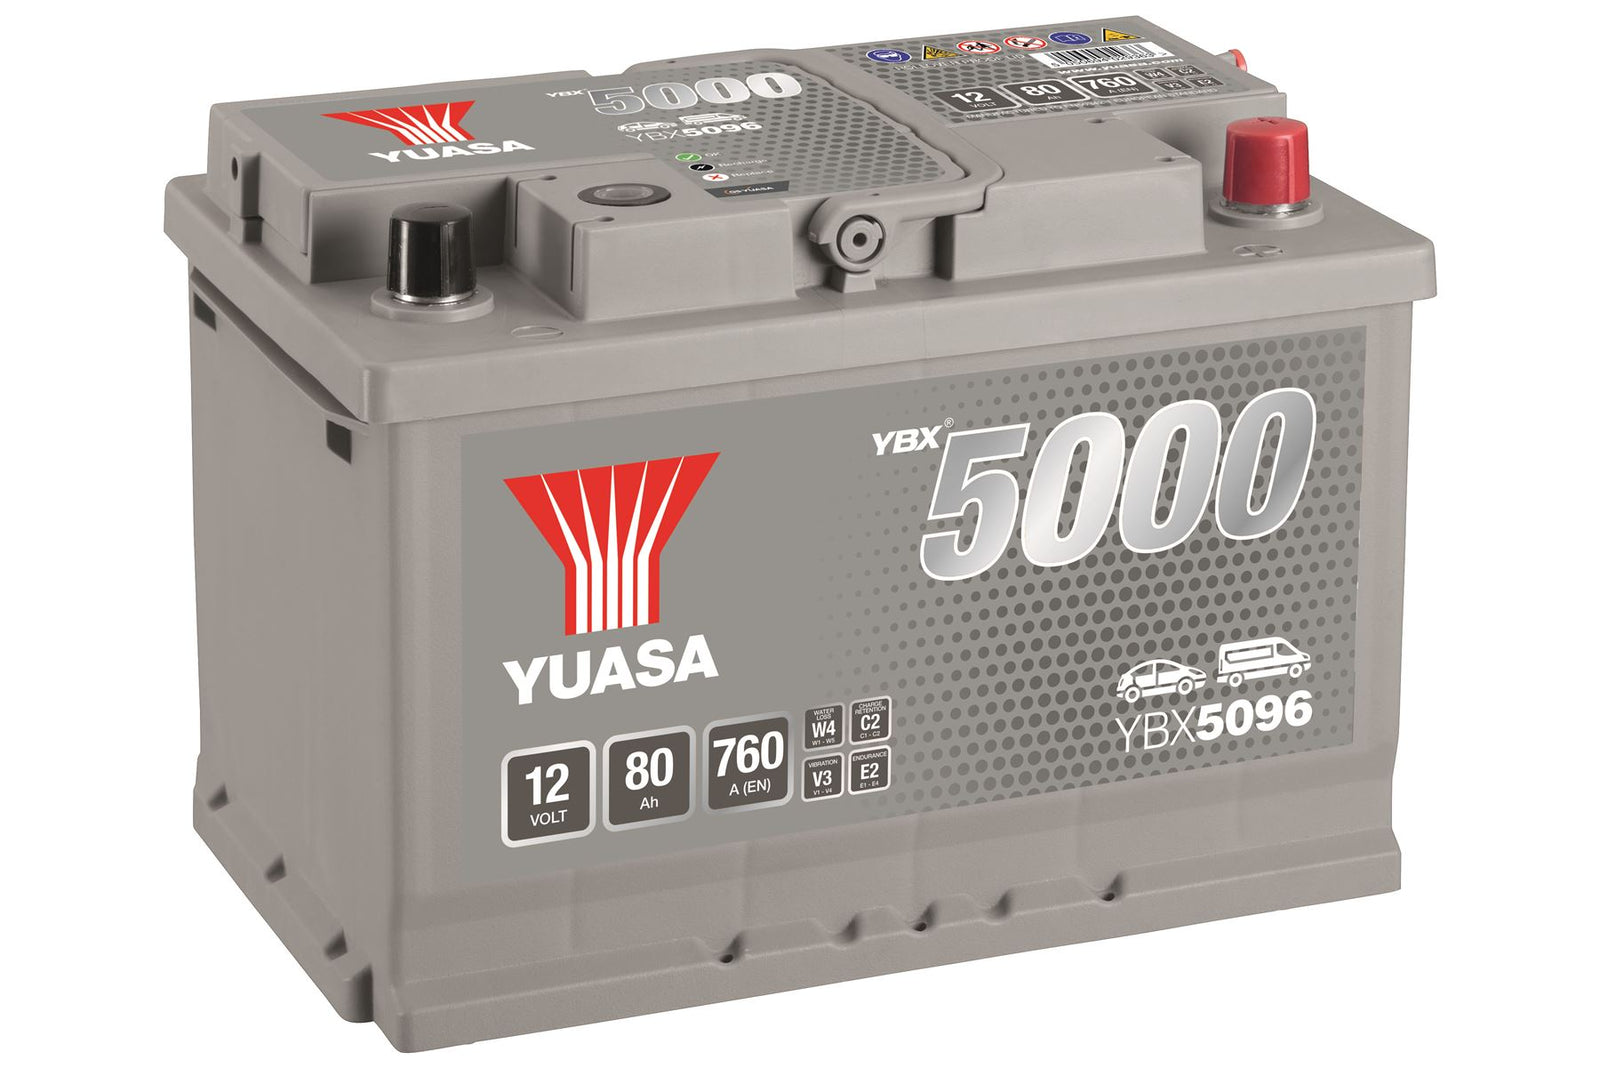 Yuasa YBX5096 Silver High Performance SMF Battery EU DIN